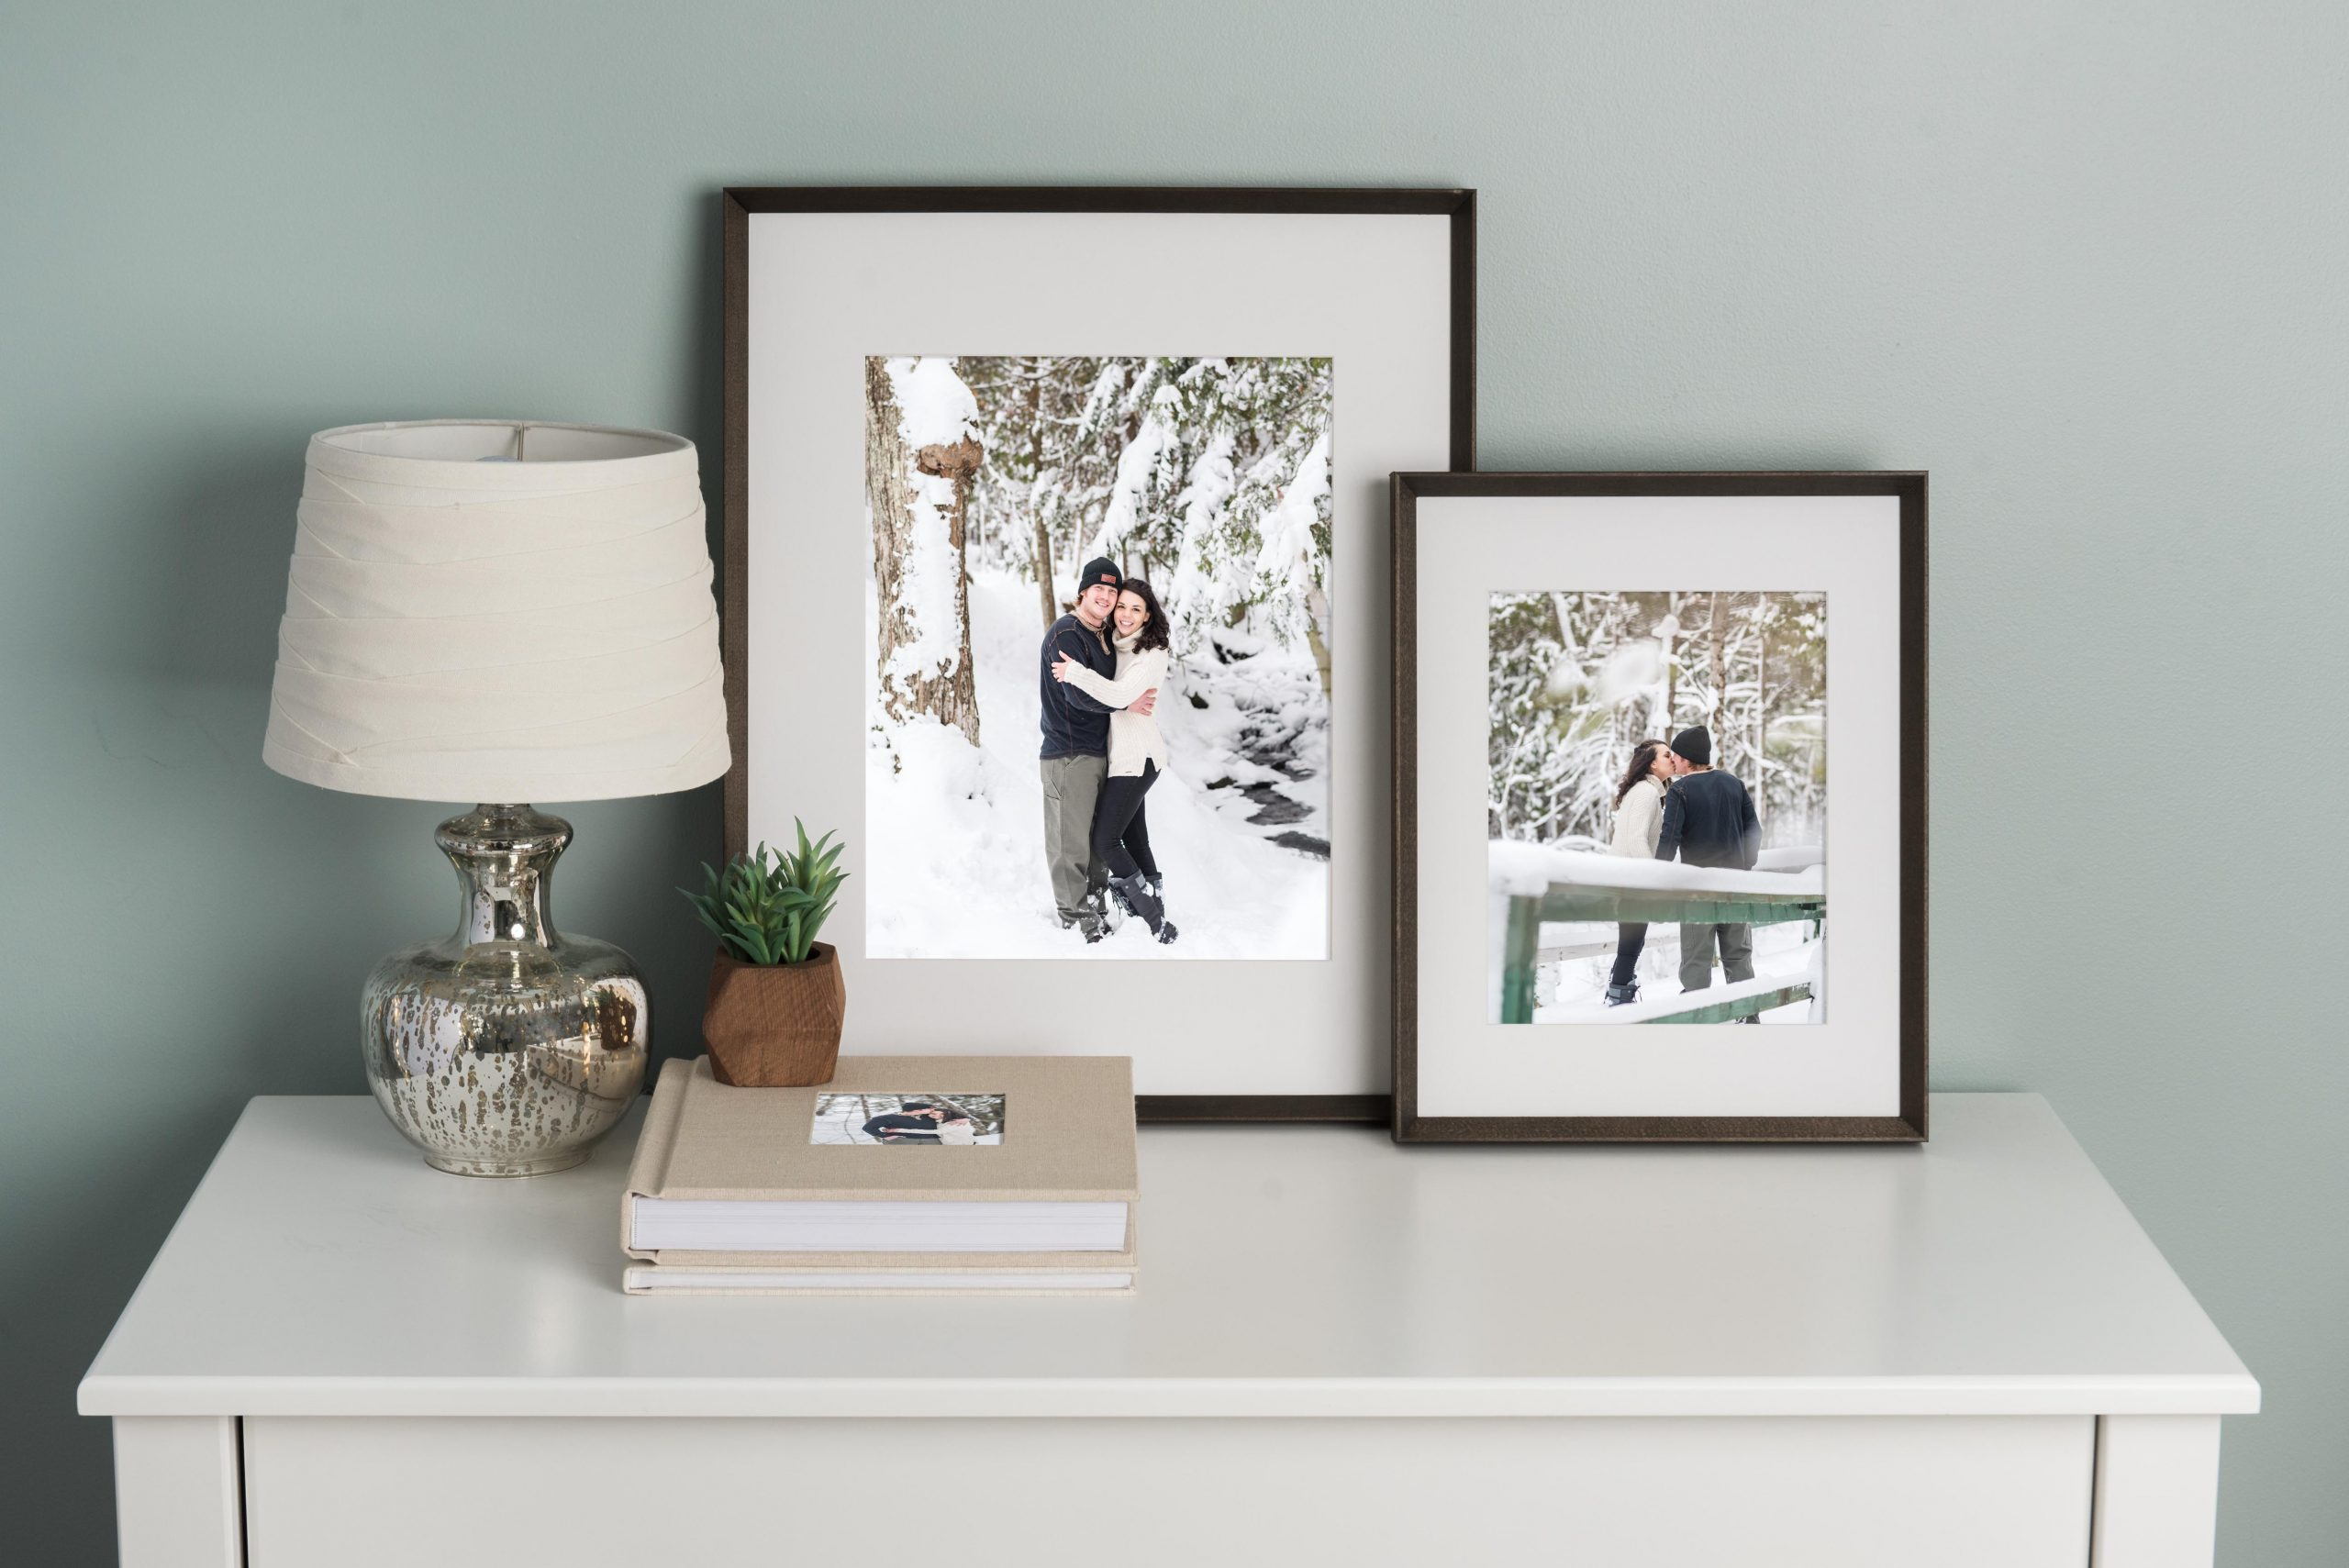 couple photoshoot, couples session, framed portraits, photo print, printed photos, professional photos